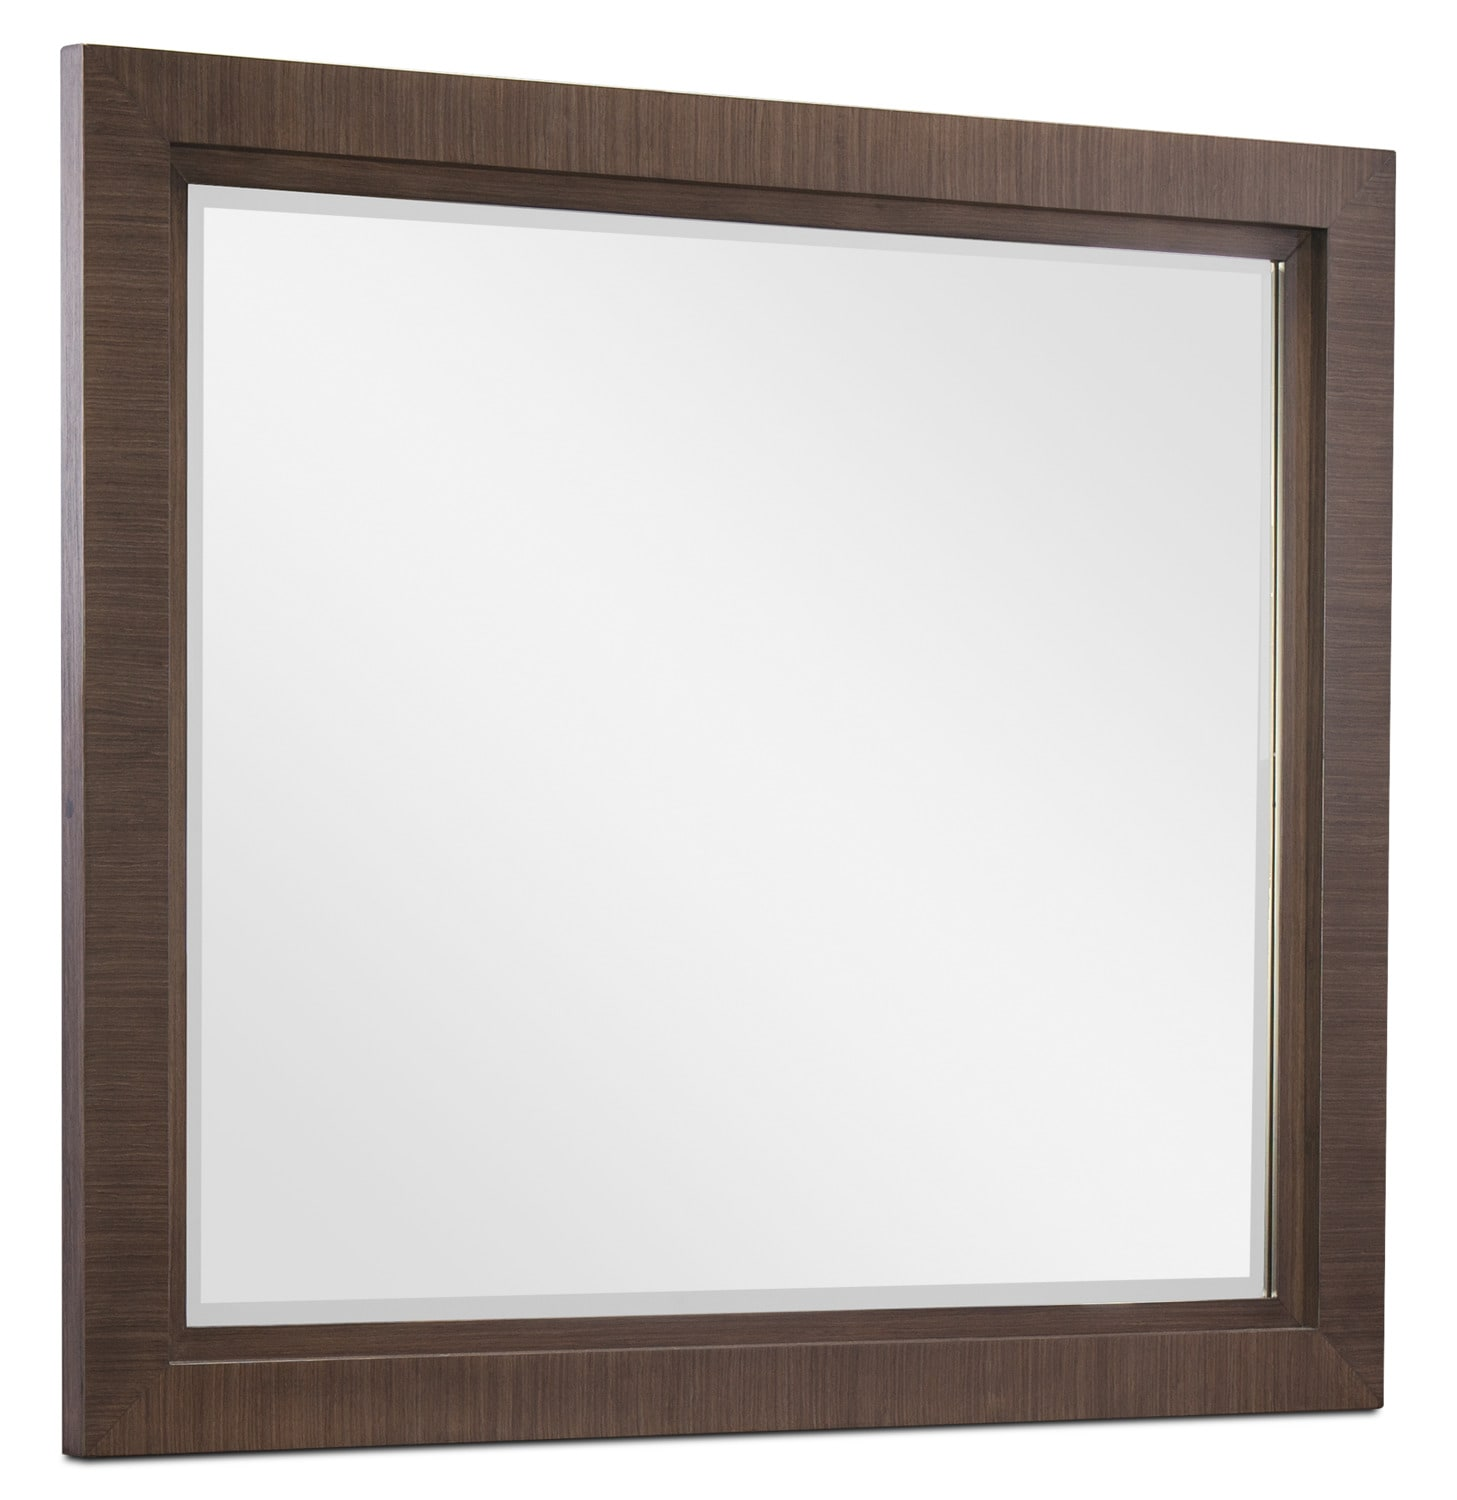 Rachael Ray Soho Mirror - Ash Brown